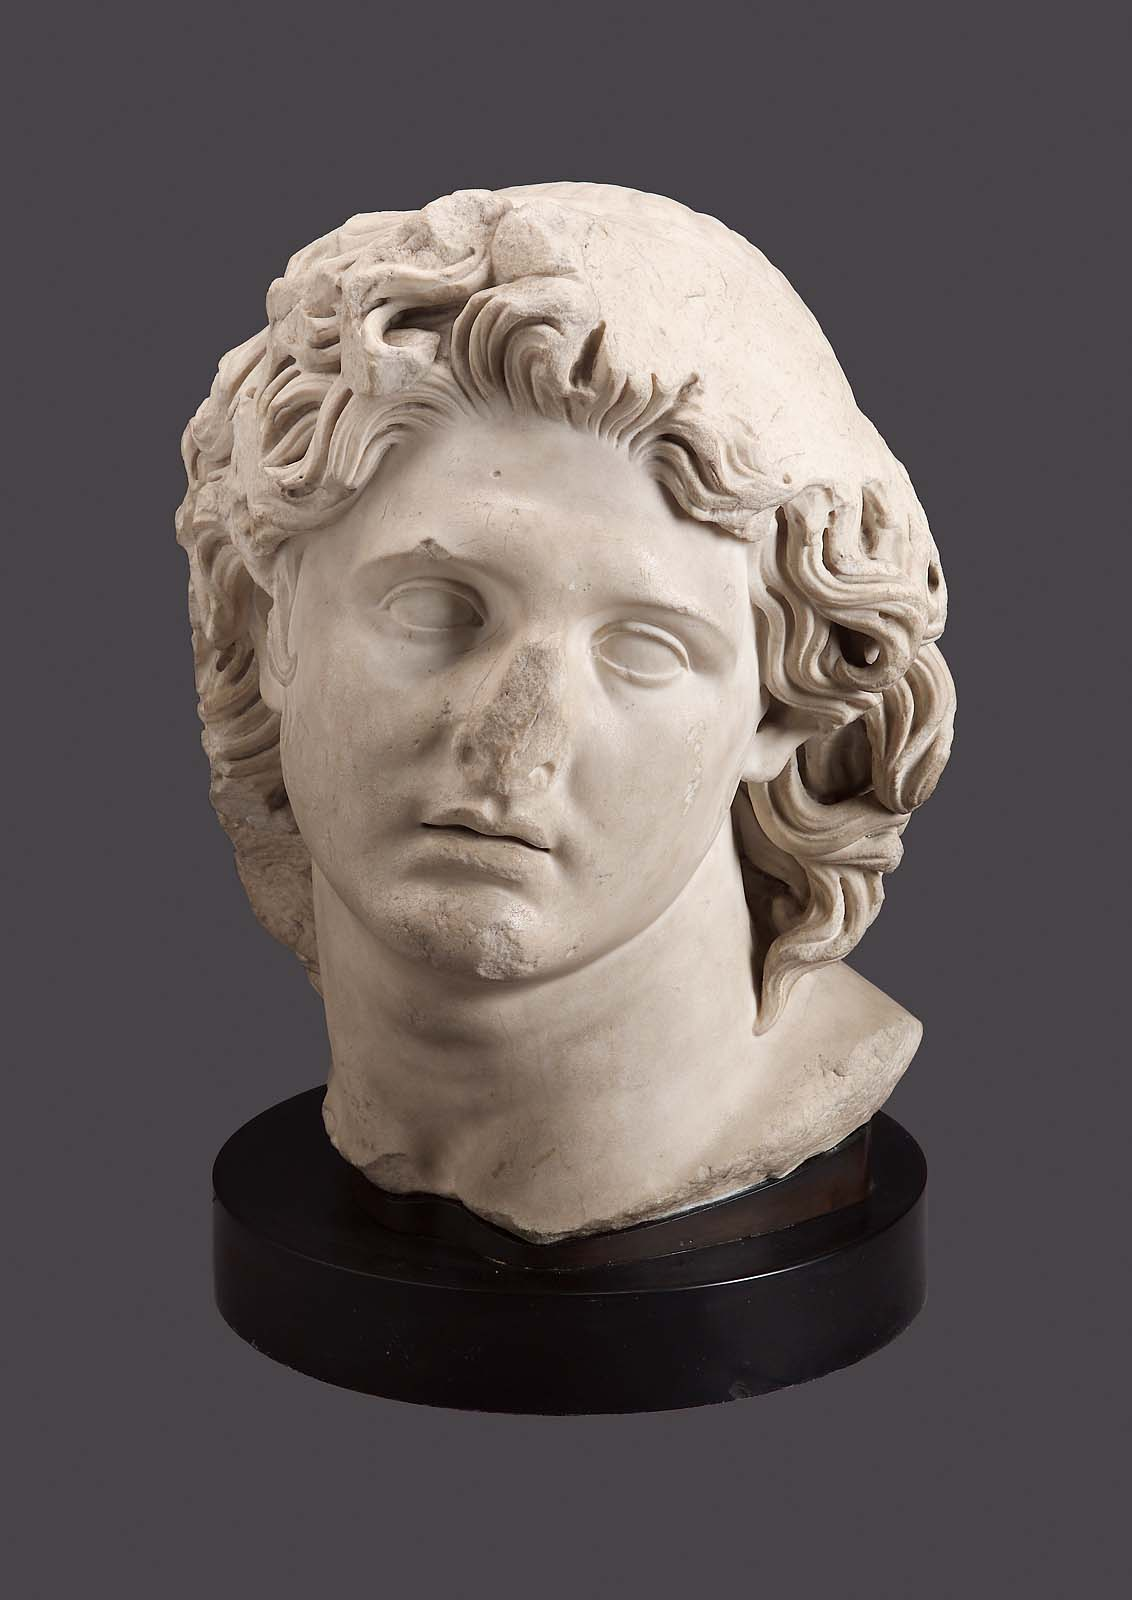 Head of alexander the great or helios the sun god museum of fine you are here kristyandbryce Choice Image